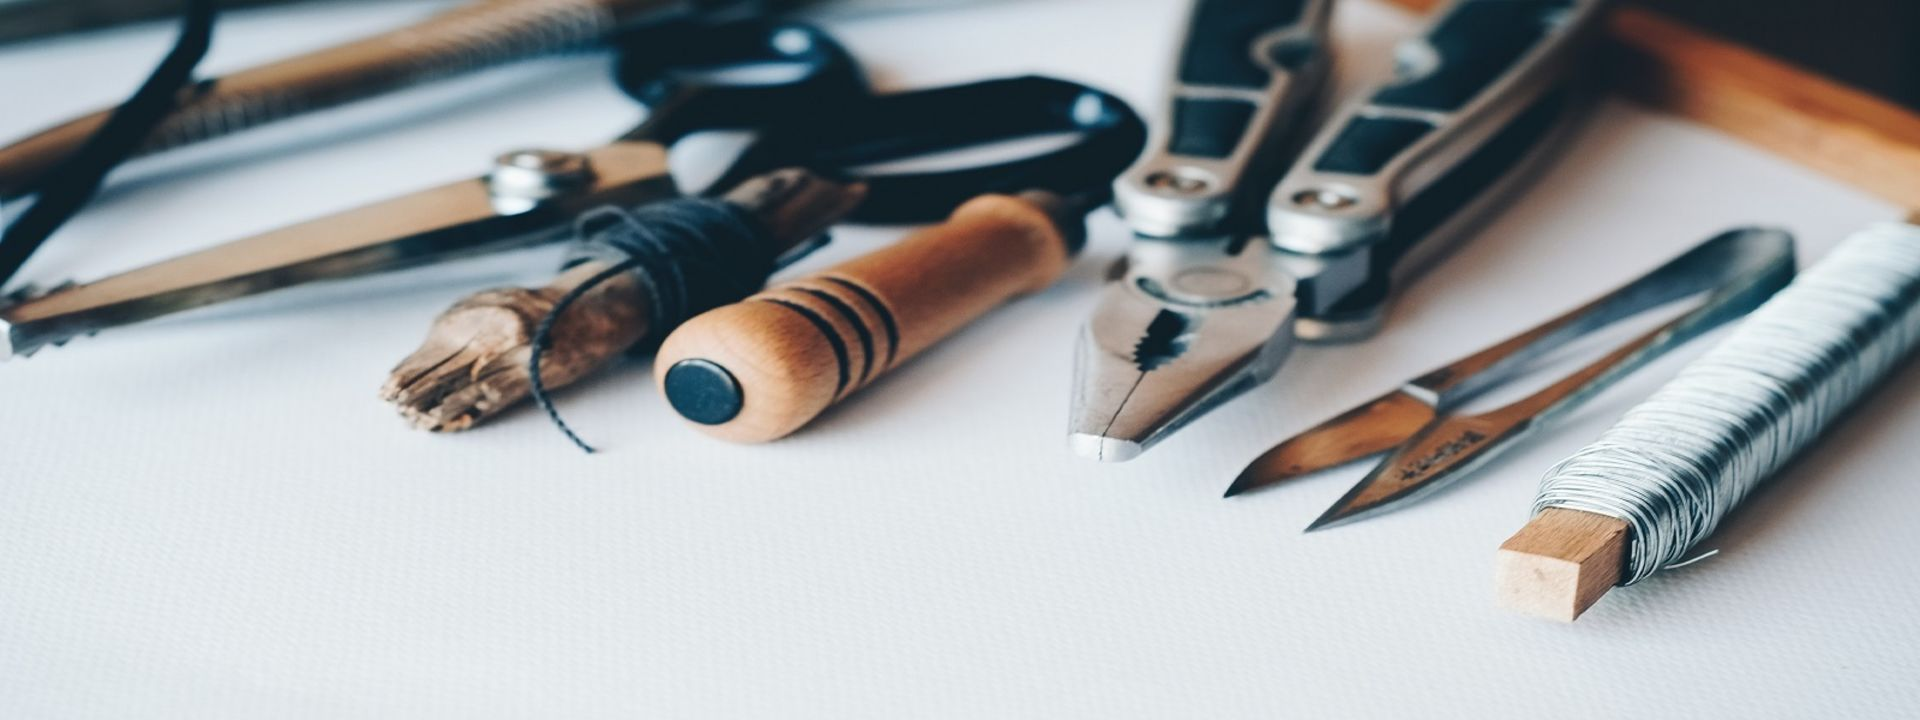 Cost Vs. Value – What Home Improvement Projects Have the Best Return on Investment?